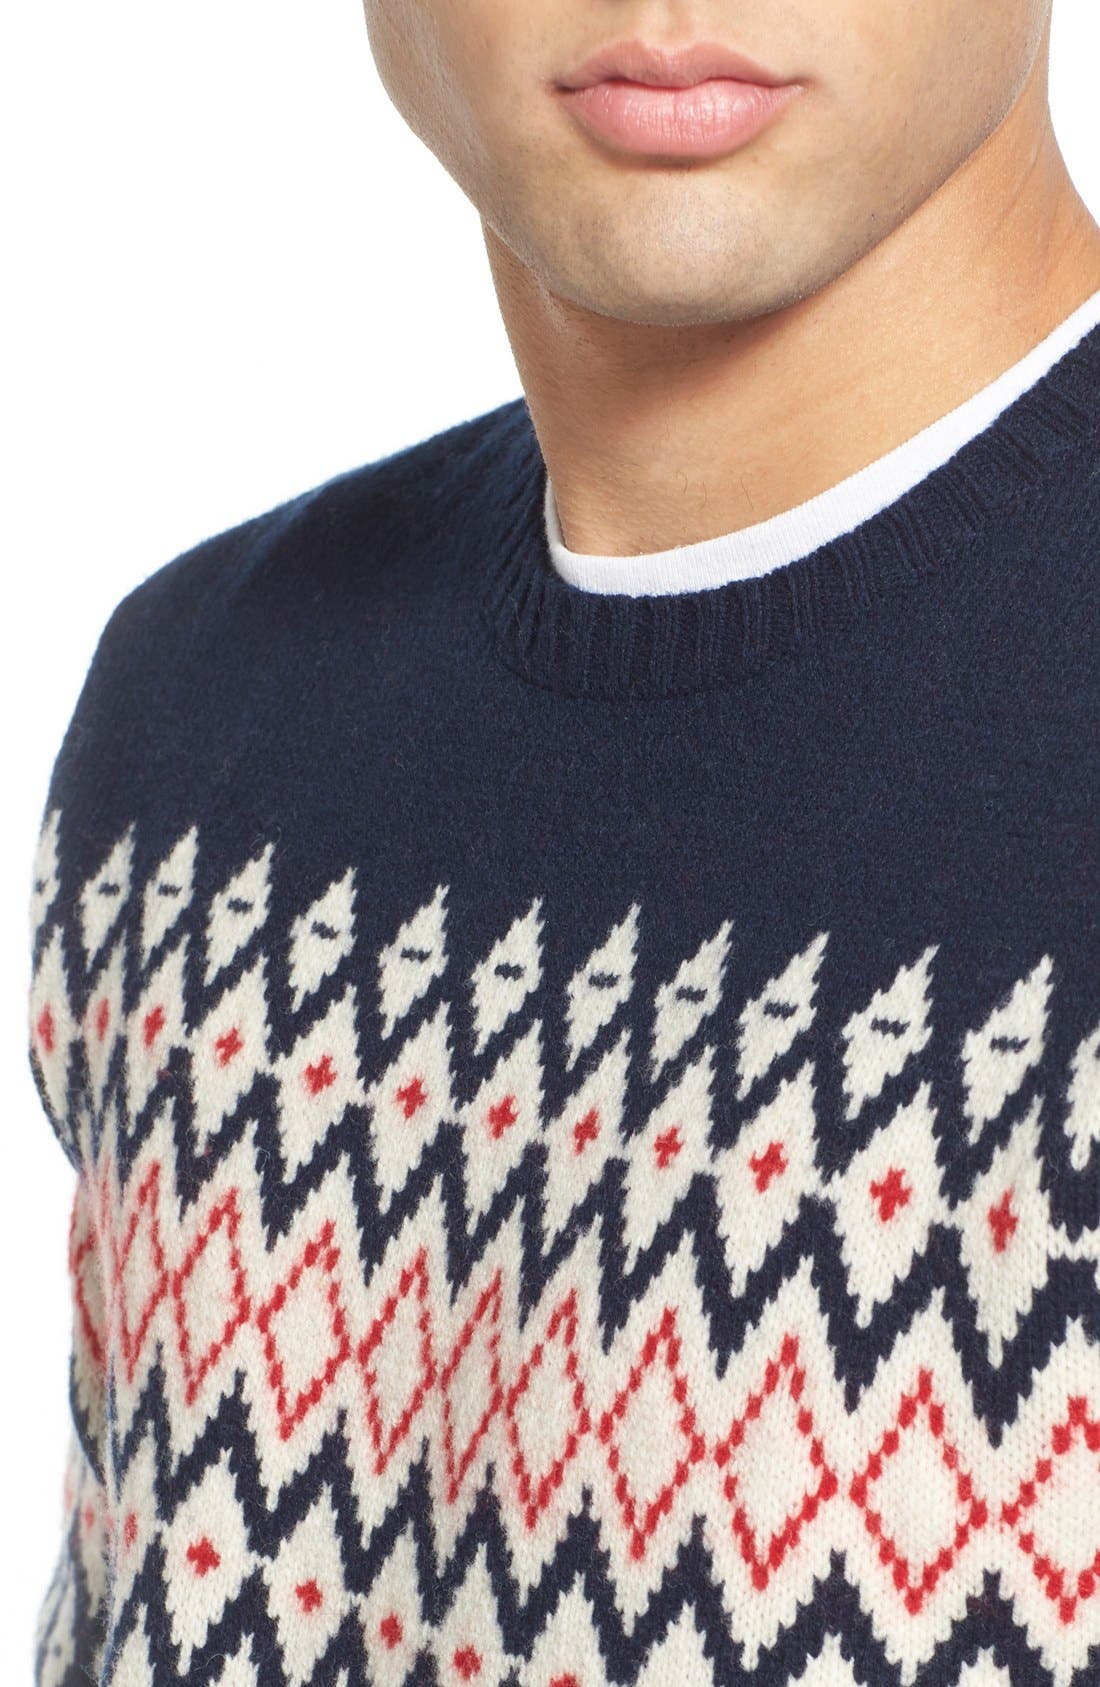 Lambswool Fair Isle Crewneck Sweater,                             Alternate thumbnail 5, color,